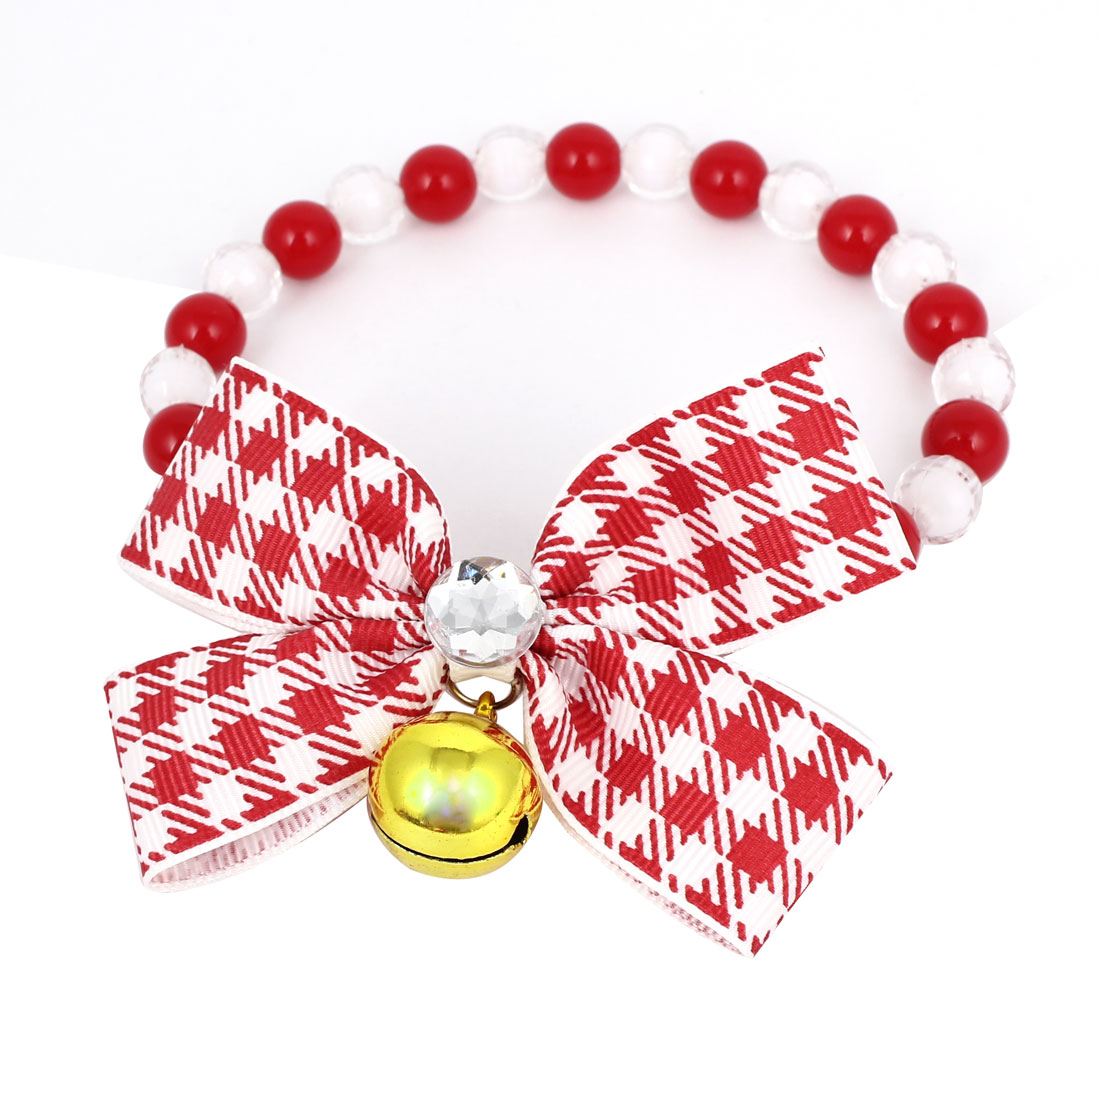 Metal Bell Pendant Bowtie Accent Pet Dog Plastic Beads Collar Necklace Red White S